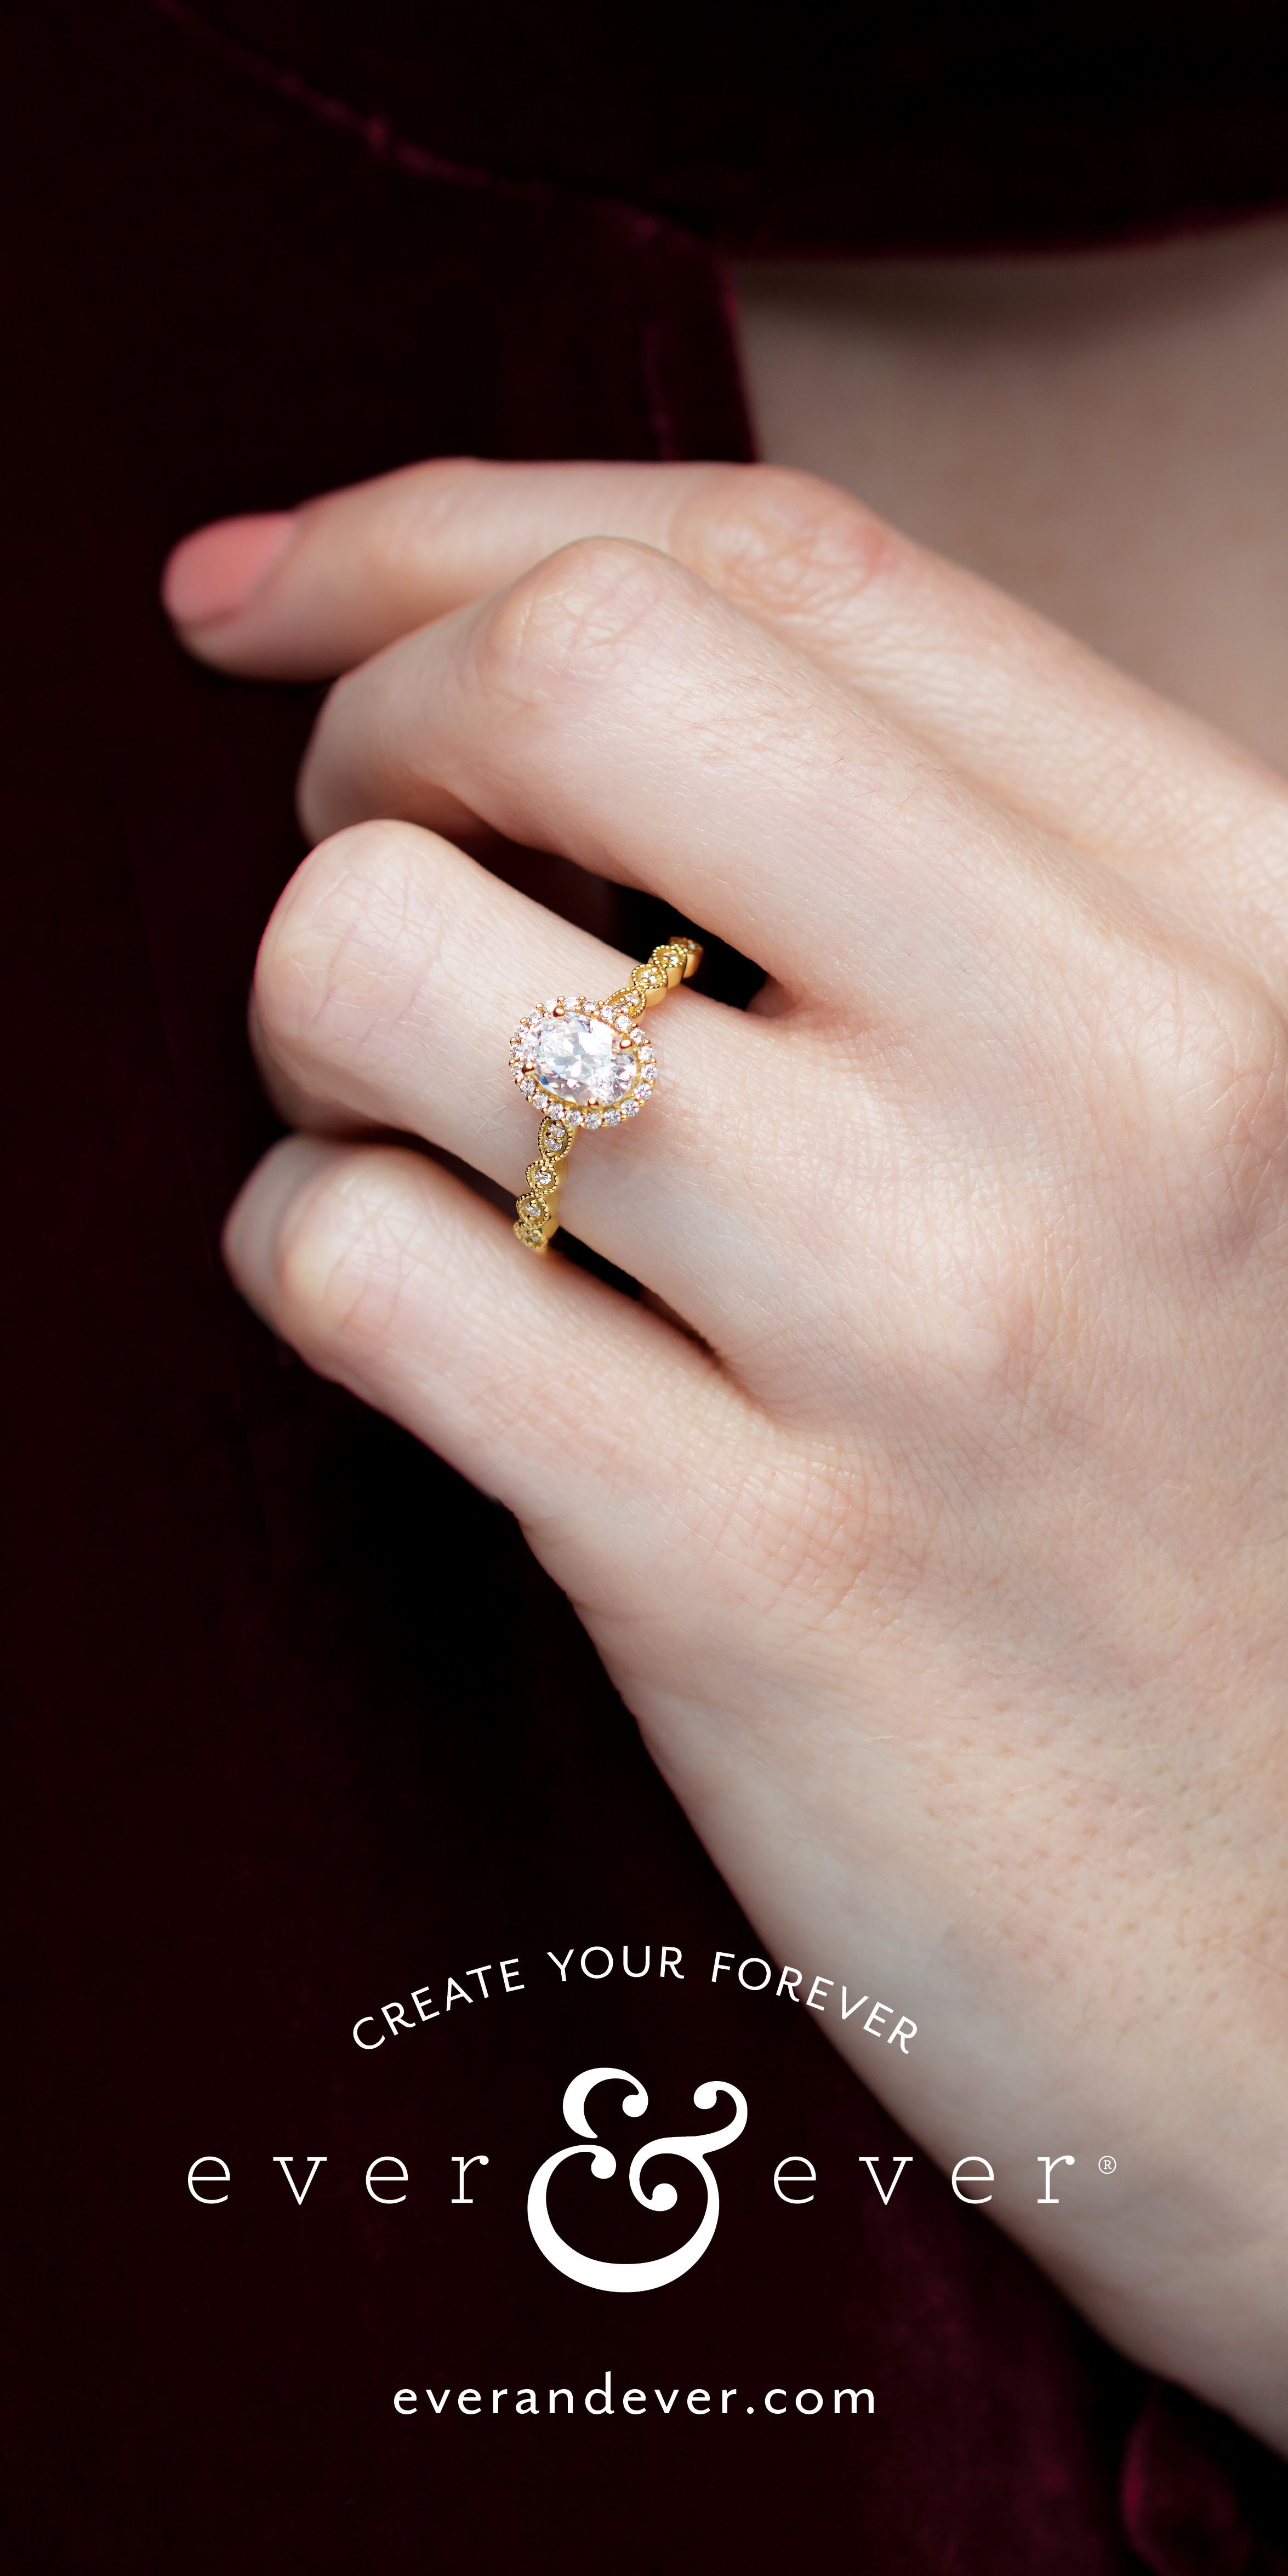 d8427602077c4 Vintage-Inspired Halo-Style Diamond Engagement Ring | ever&ever ...